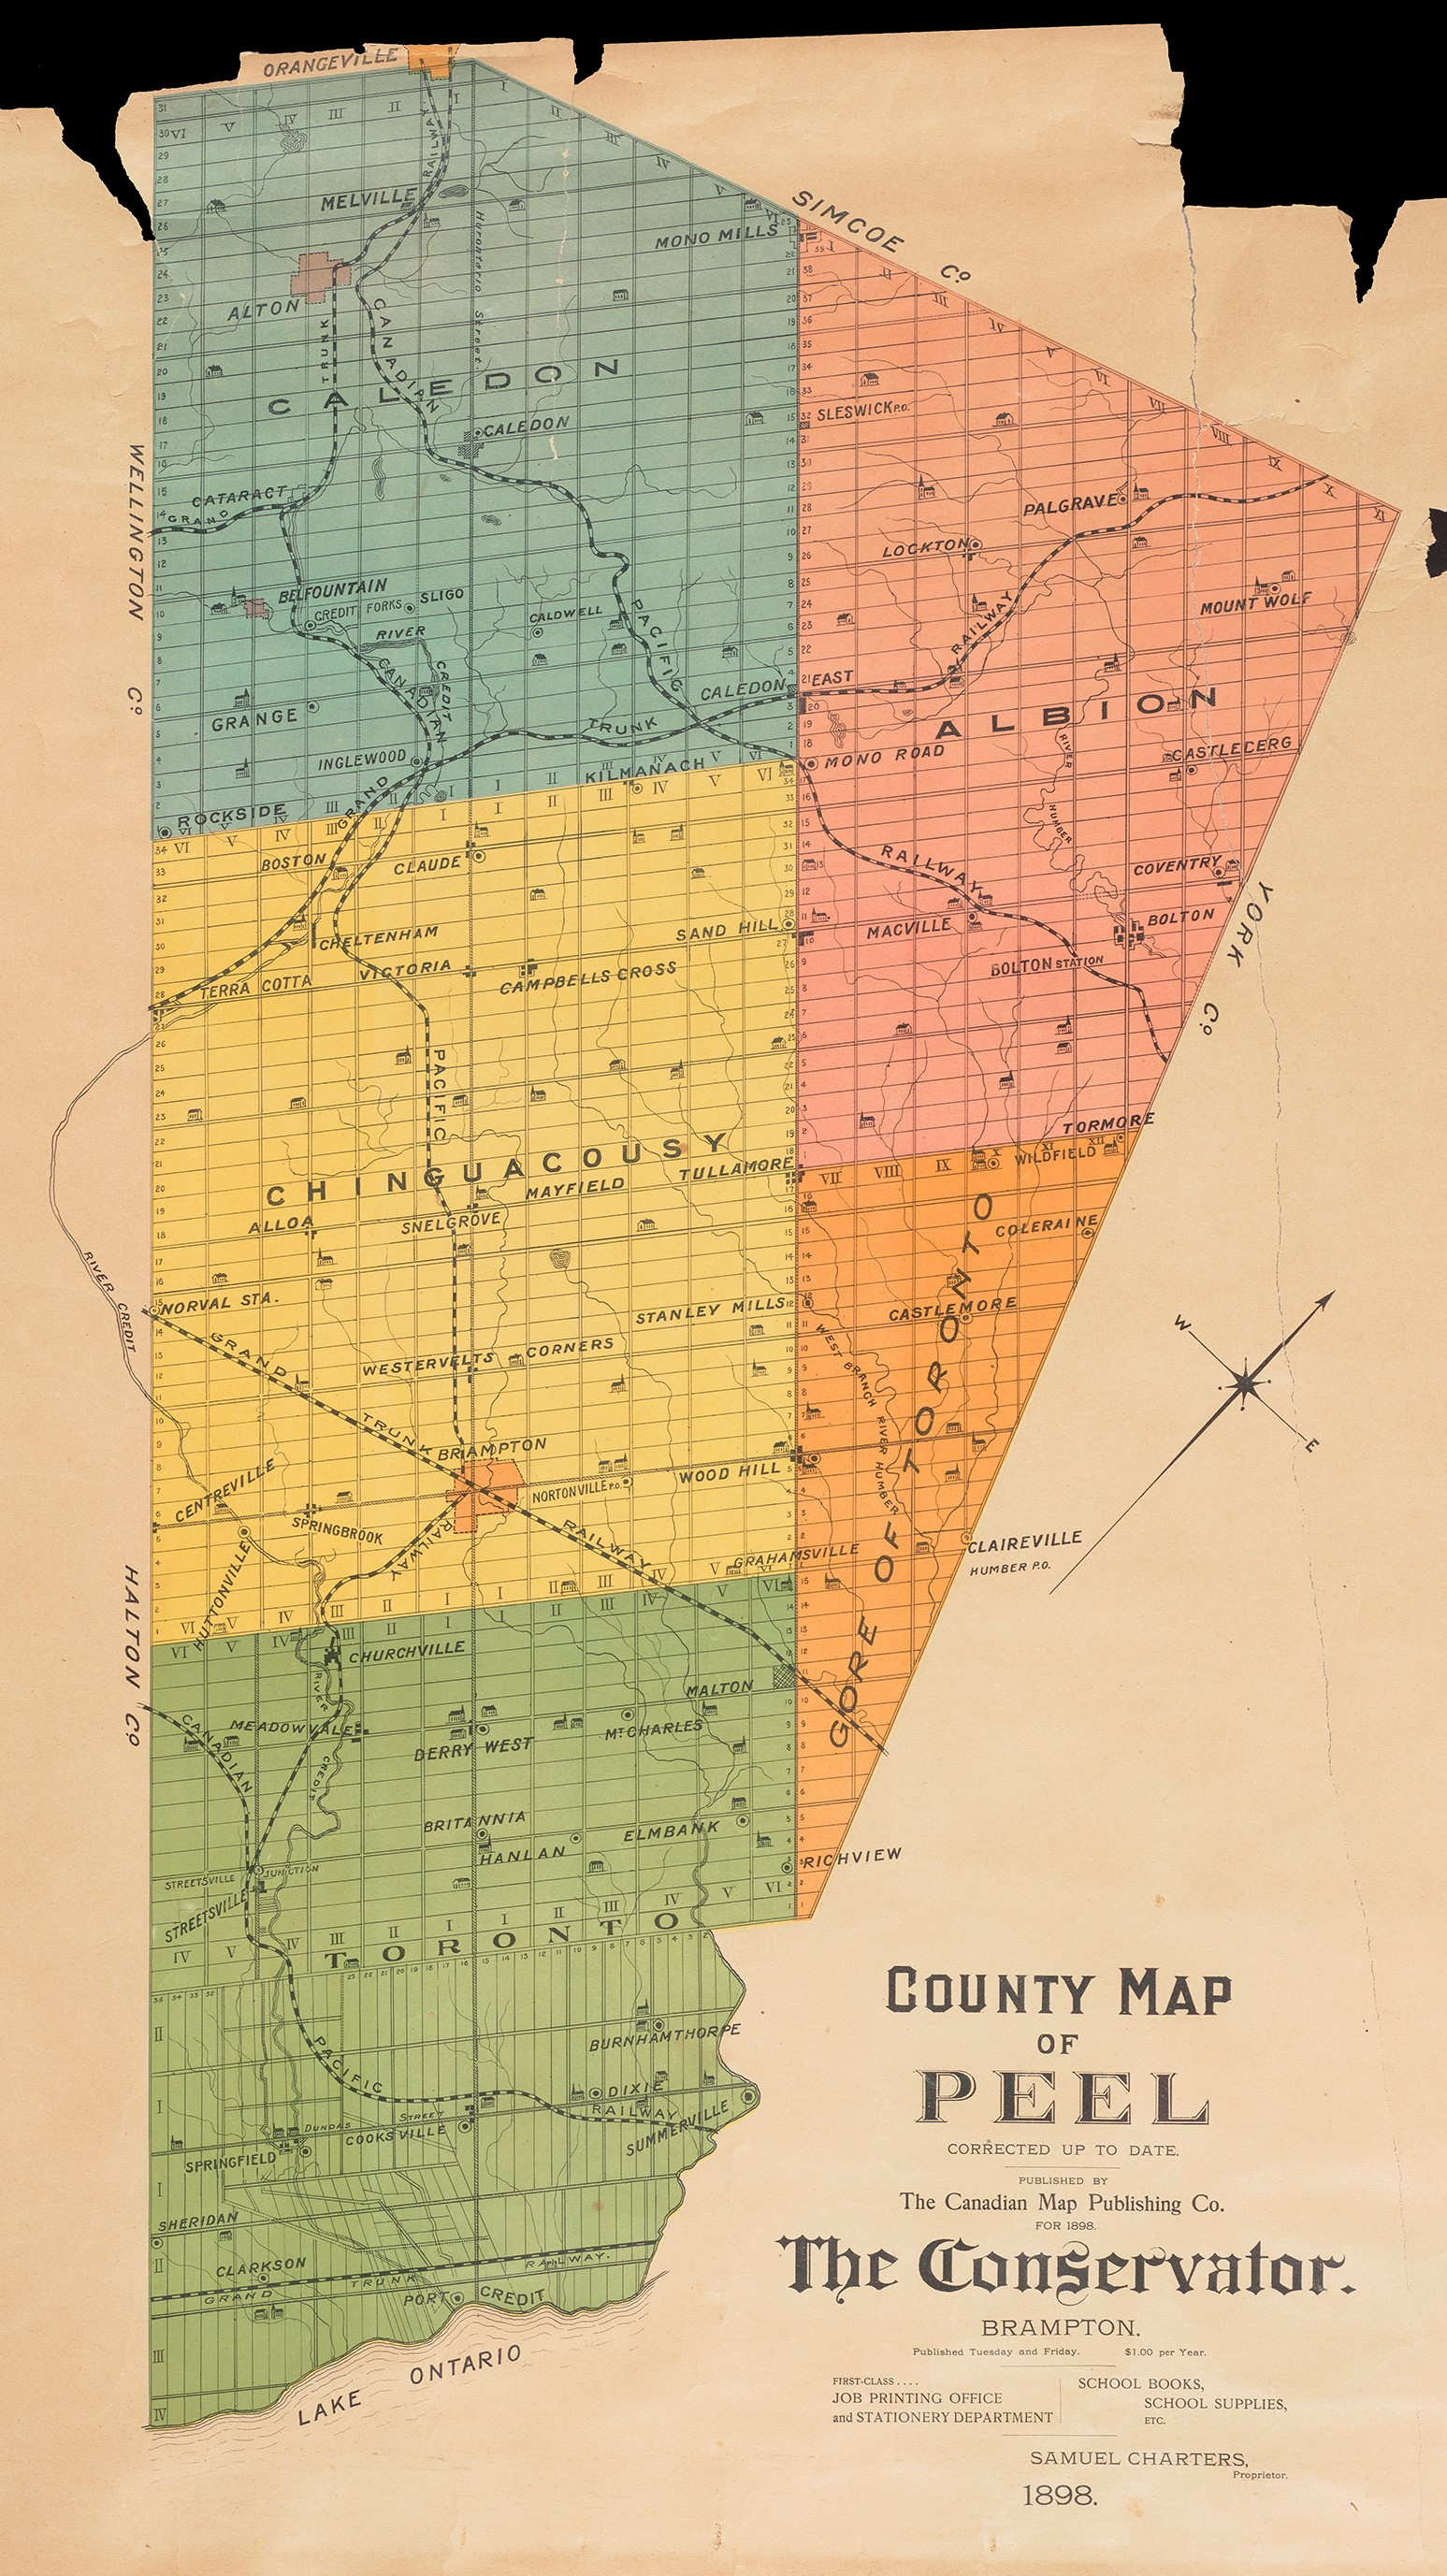 county-map-of-peel-thumb-cropped-1